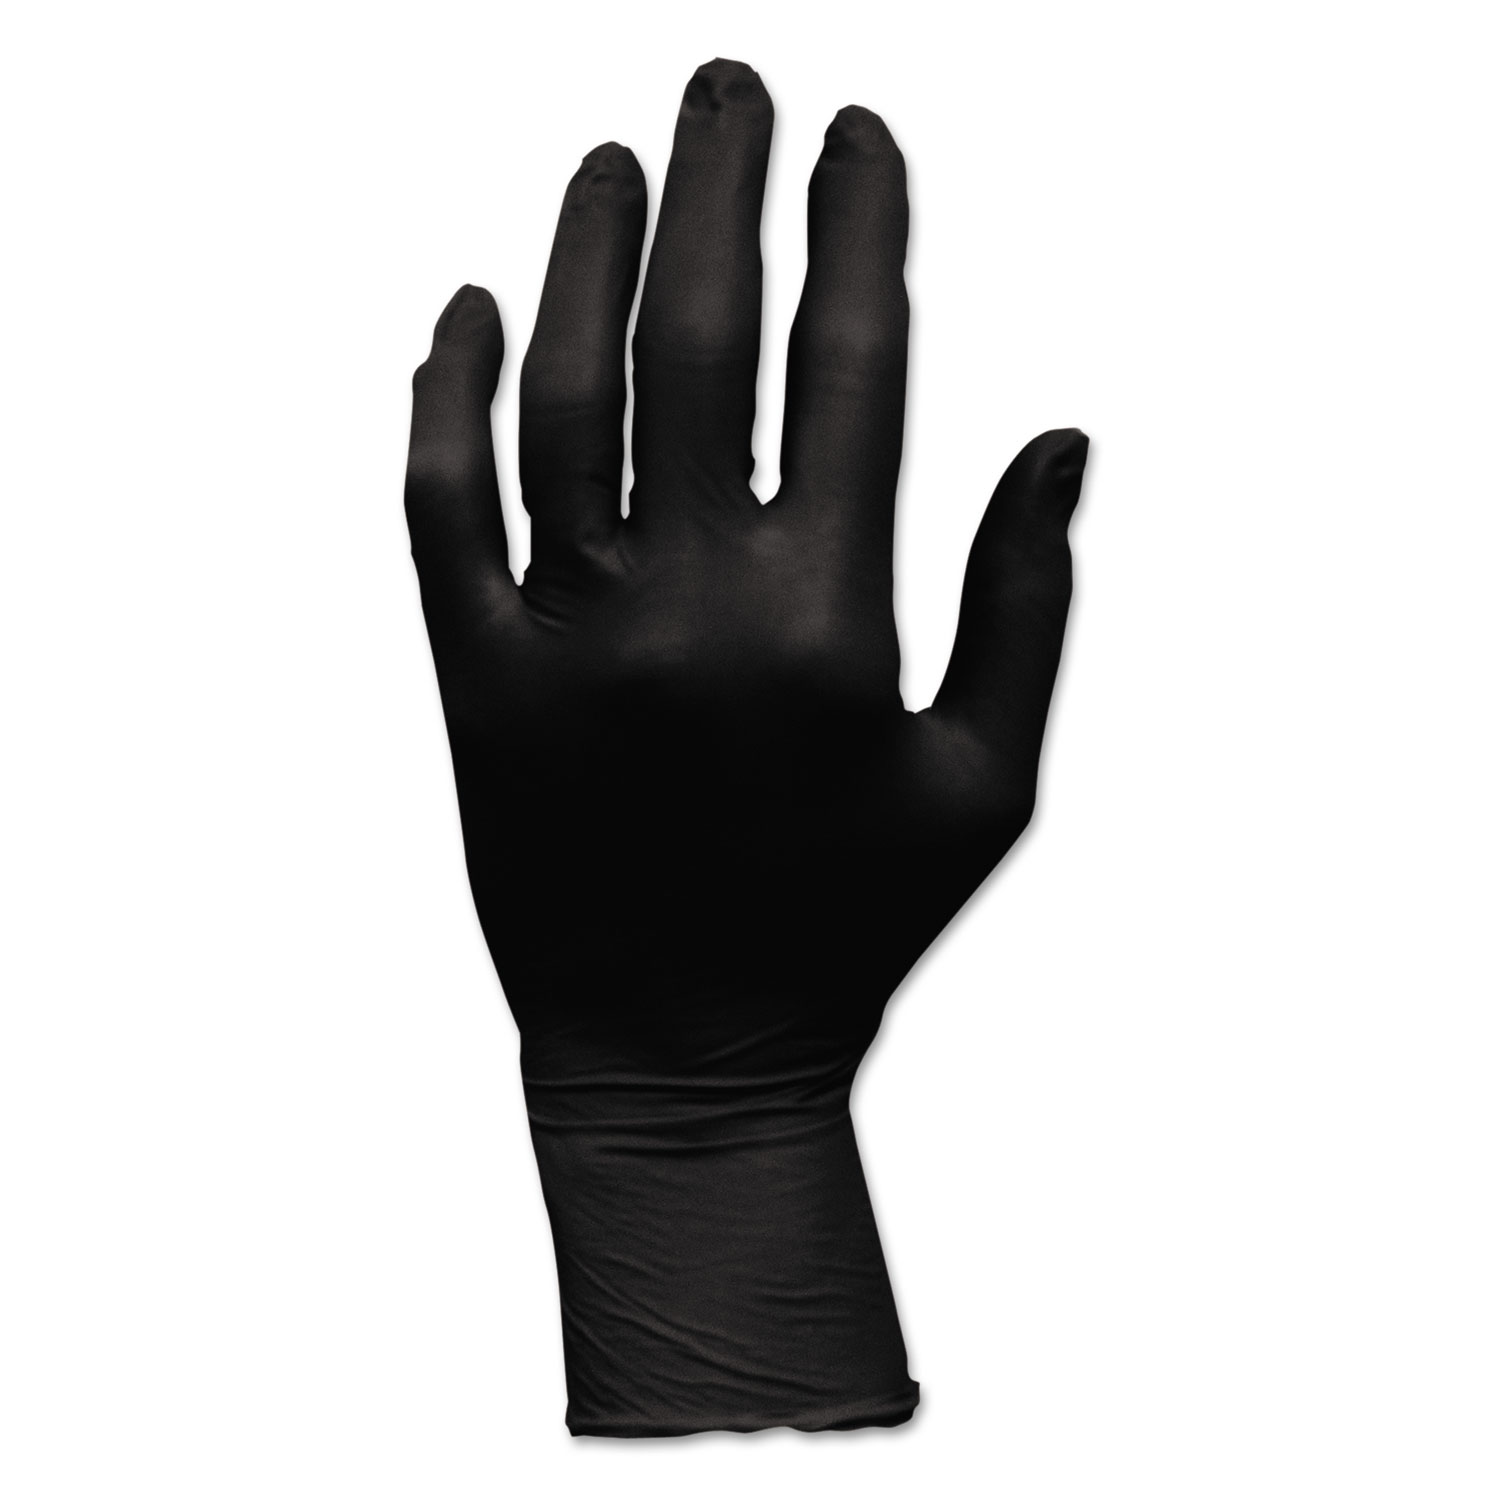 Genuine 12 Pairs Nitrotouch Gloves X-Large Protective Safety Equipment Pa.